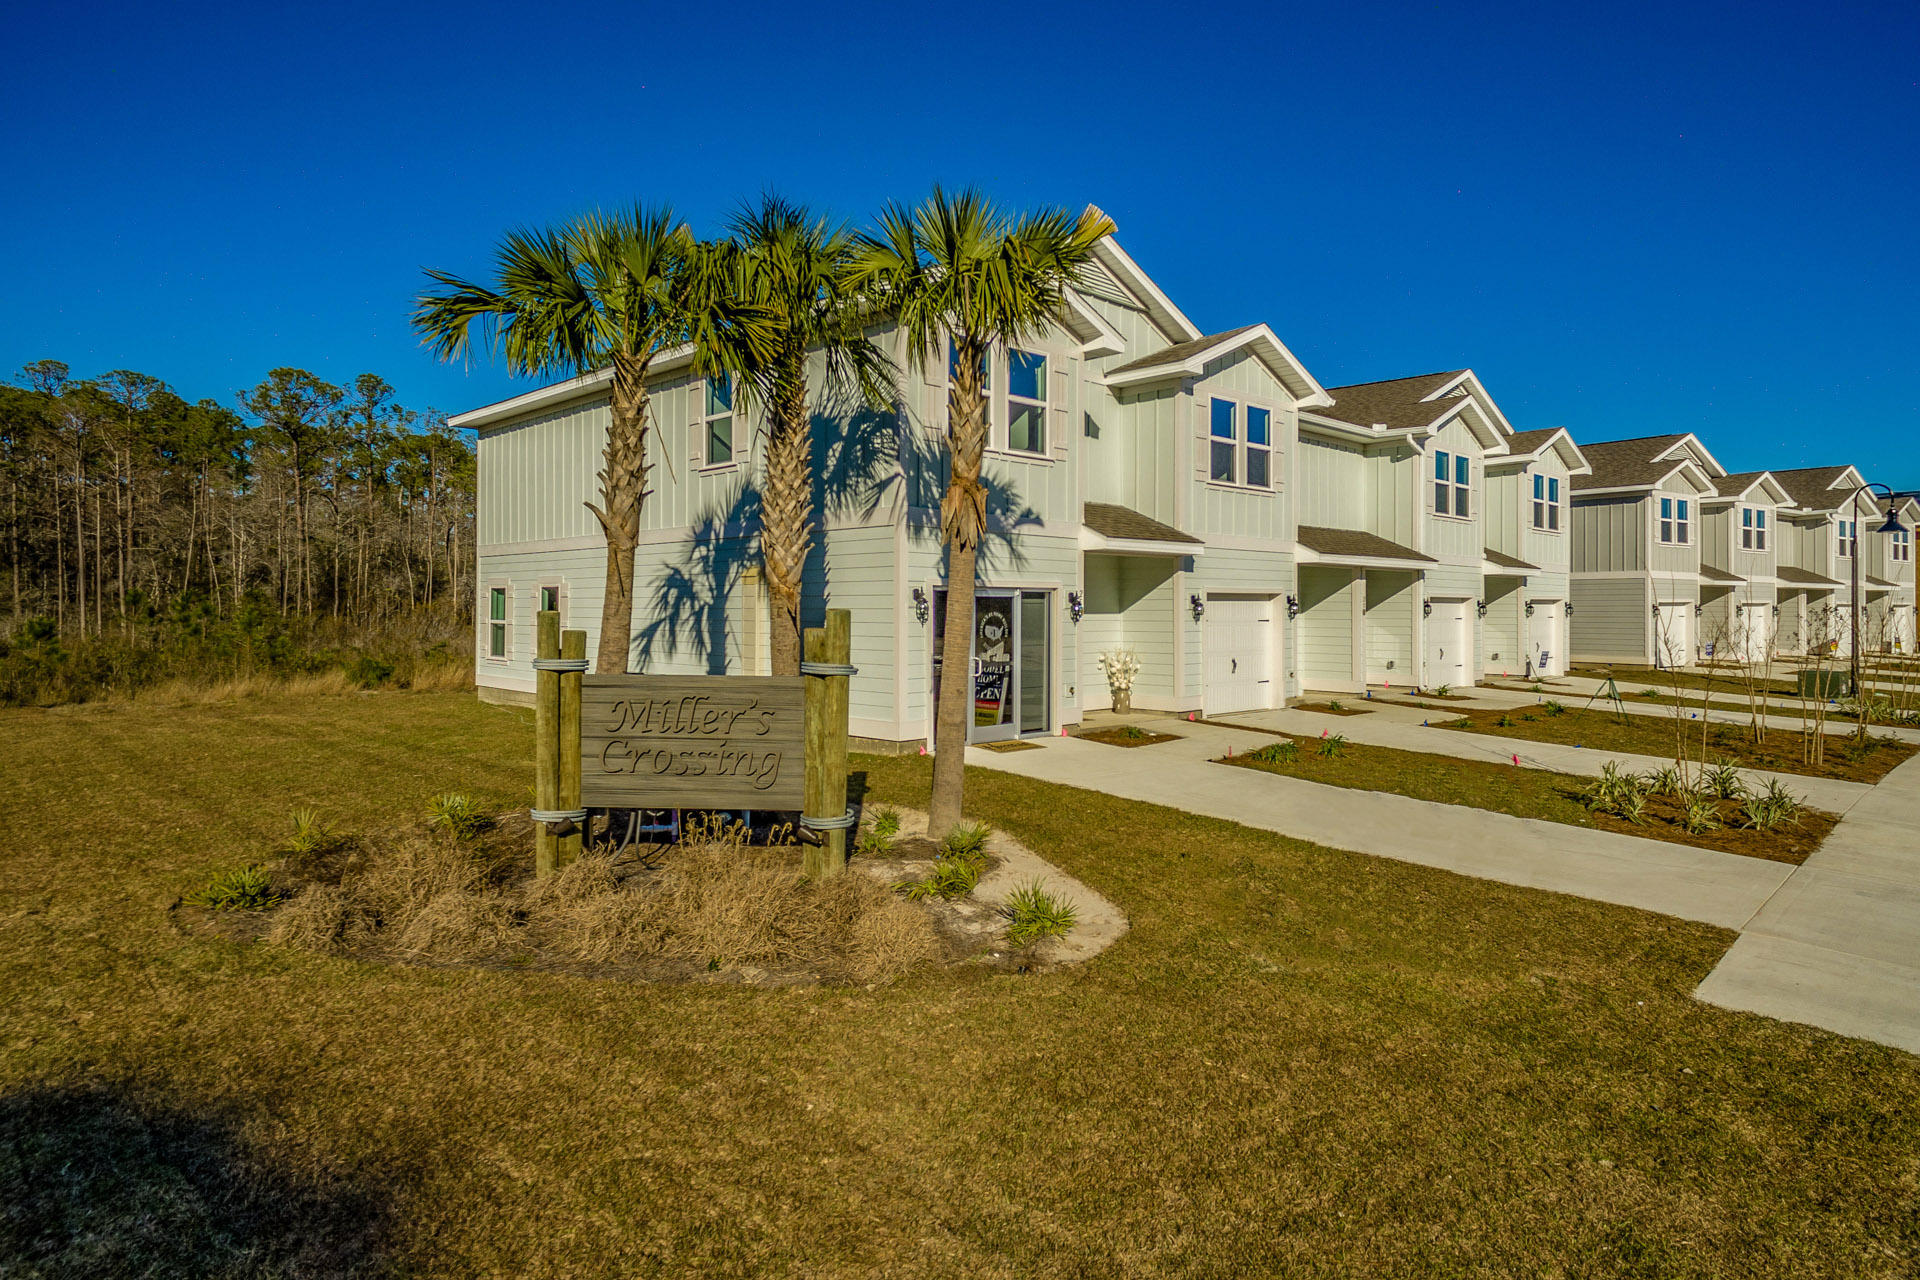 Miller's Crossing - Now Selling. MODEL HOME NOW OPEN!! Contract now to pick colors and options- Estimated Closing July 2019. AMAZING OPPORTUNITY to own new construction with introductory pricing in South Walton. Located just minutes awayfrom famous CO Hwy 30a, some of the country's best beaches, incredible shopping, and world class dining. Miller's Crossing is in a central location to both Destin, andPanama City Beach, allowing you to enjoy the best of both worlds. Walking distance to Alaqua Unleashed Dog park, Padgett Park, nature trails and public library.